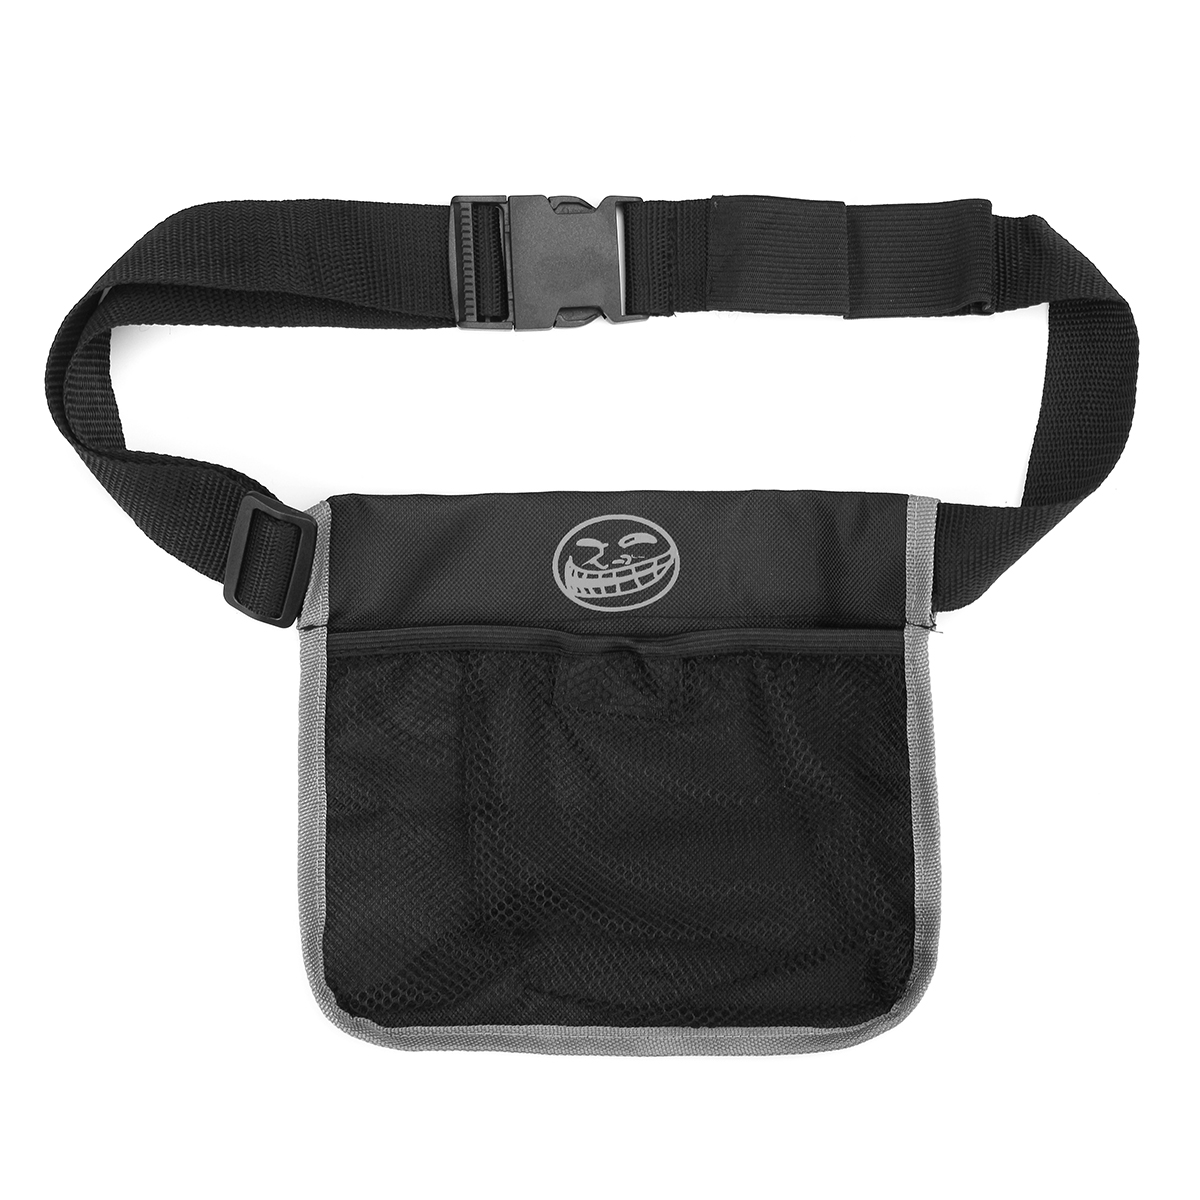 22.5x20cm Nylon Waist Bag Adjustable Storage Bag Waterproof Spor